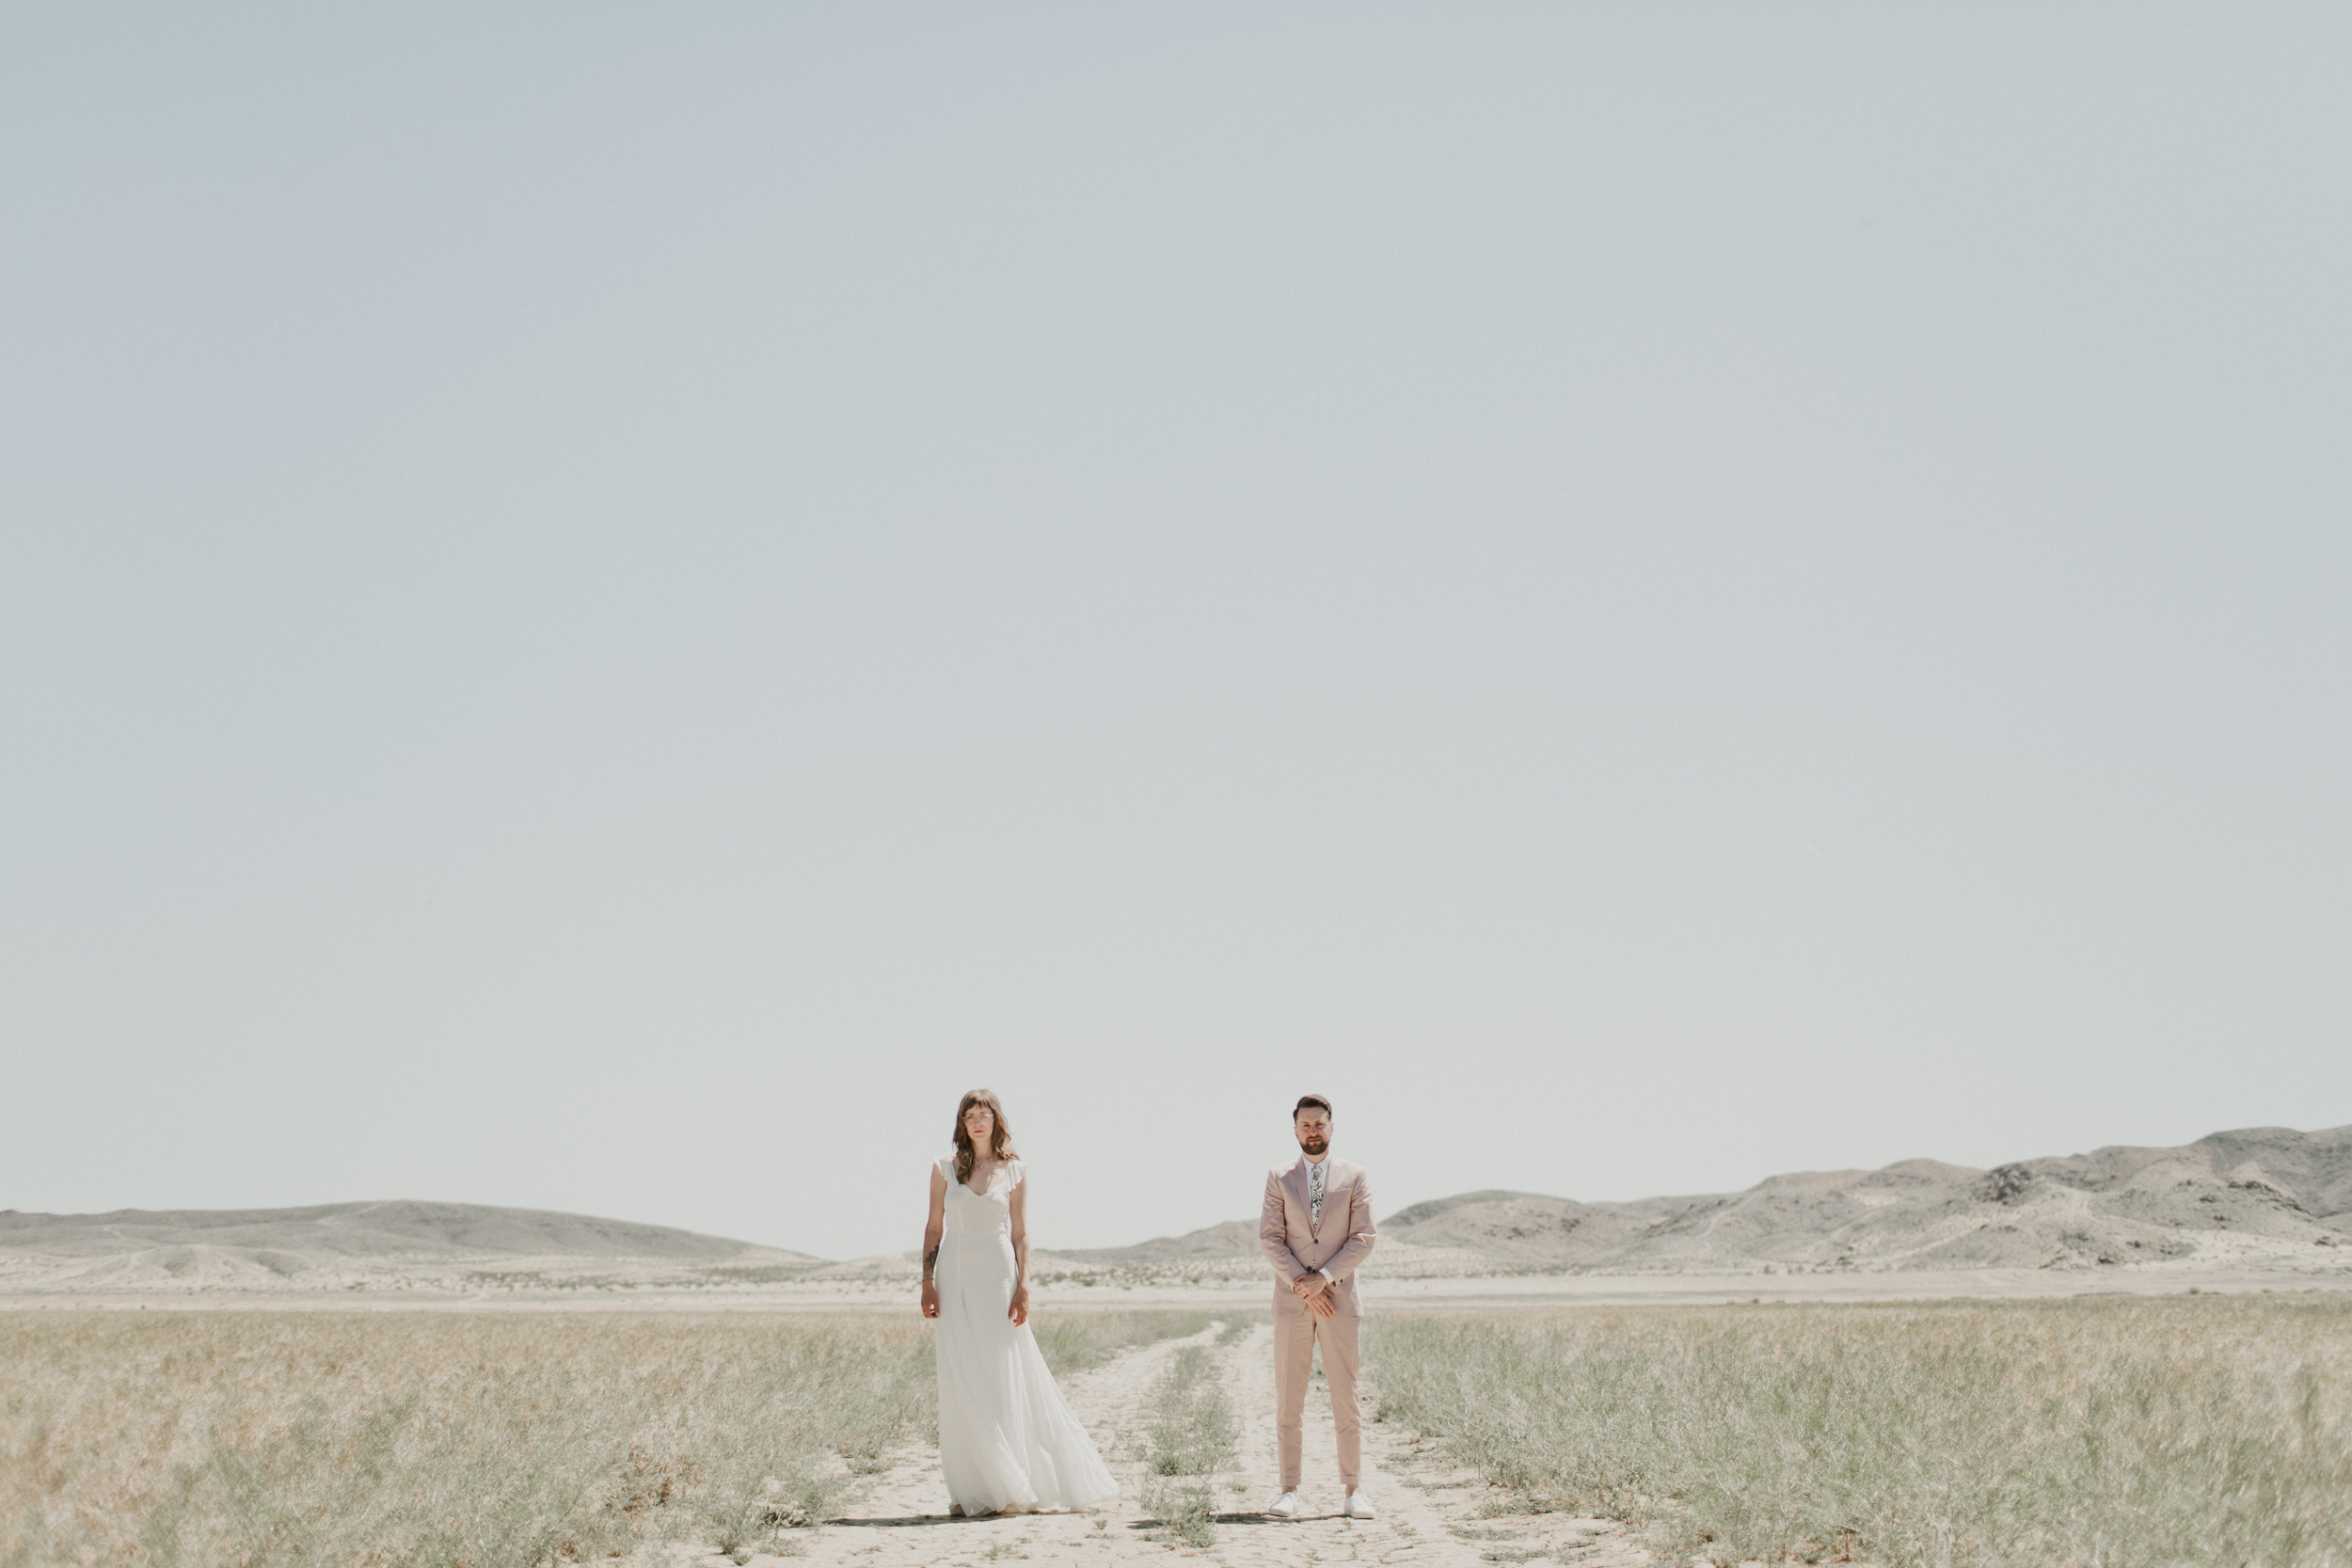 Maine-Elopement-Photographer-88.jpg